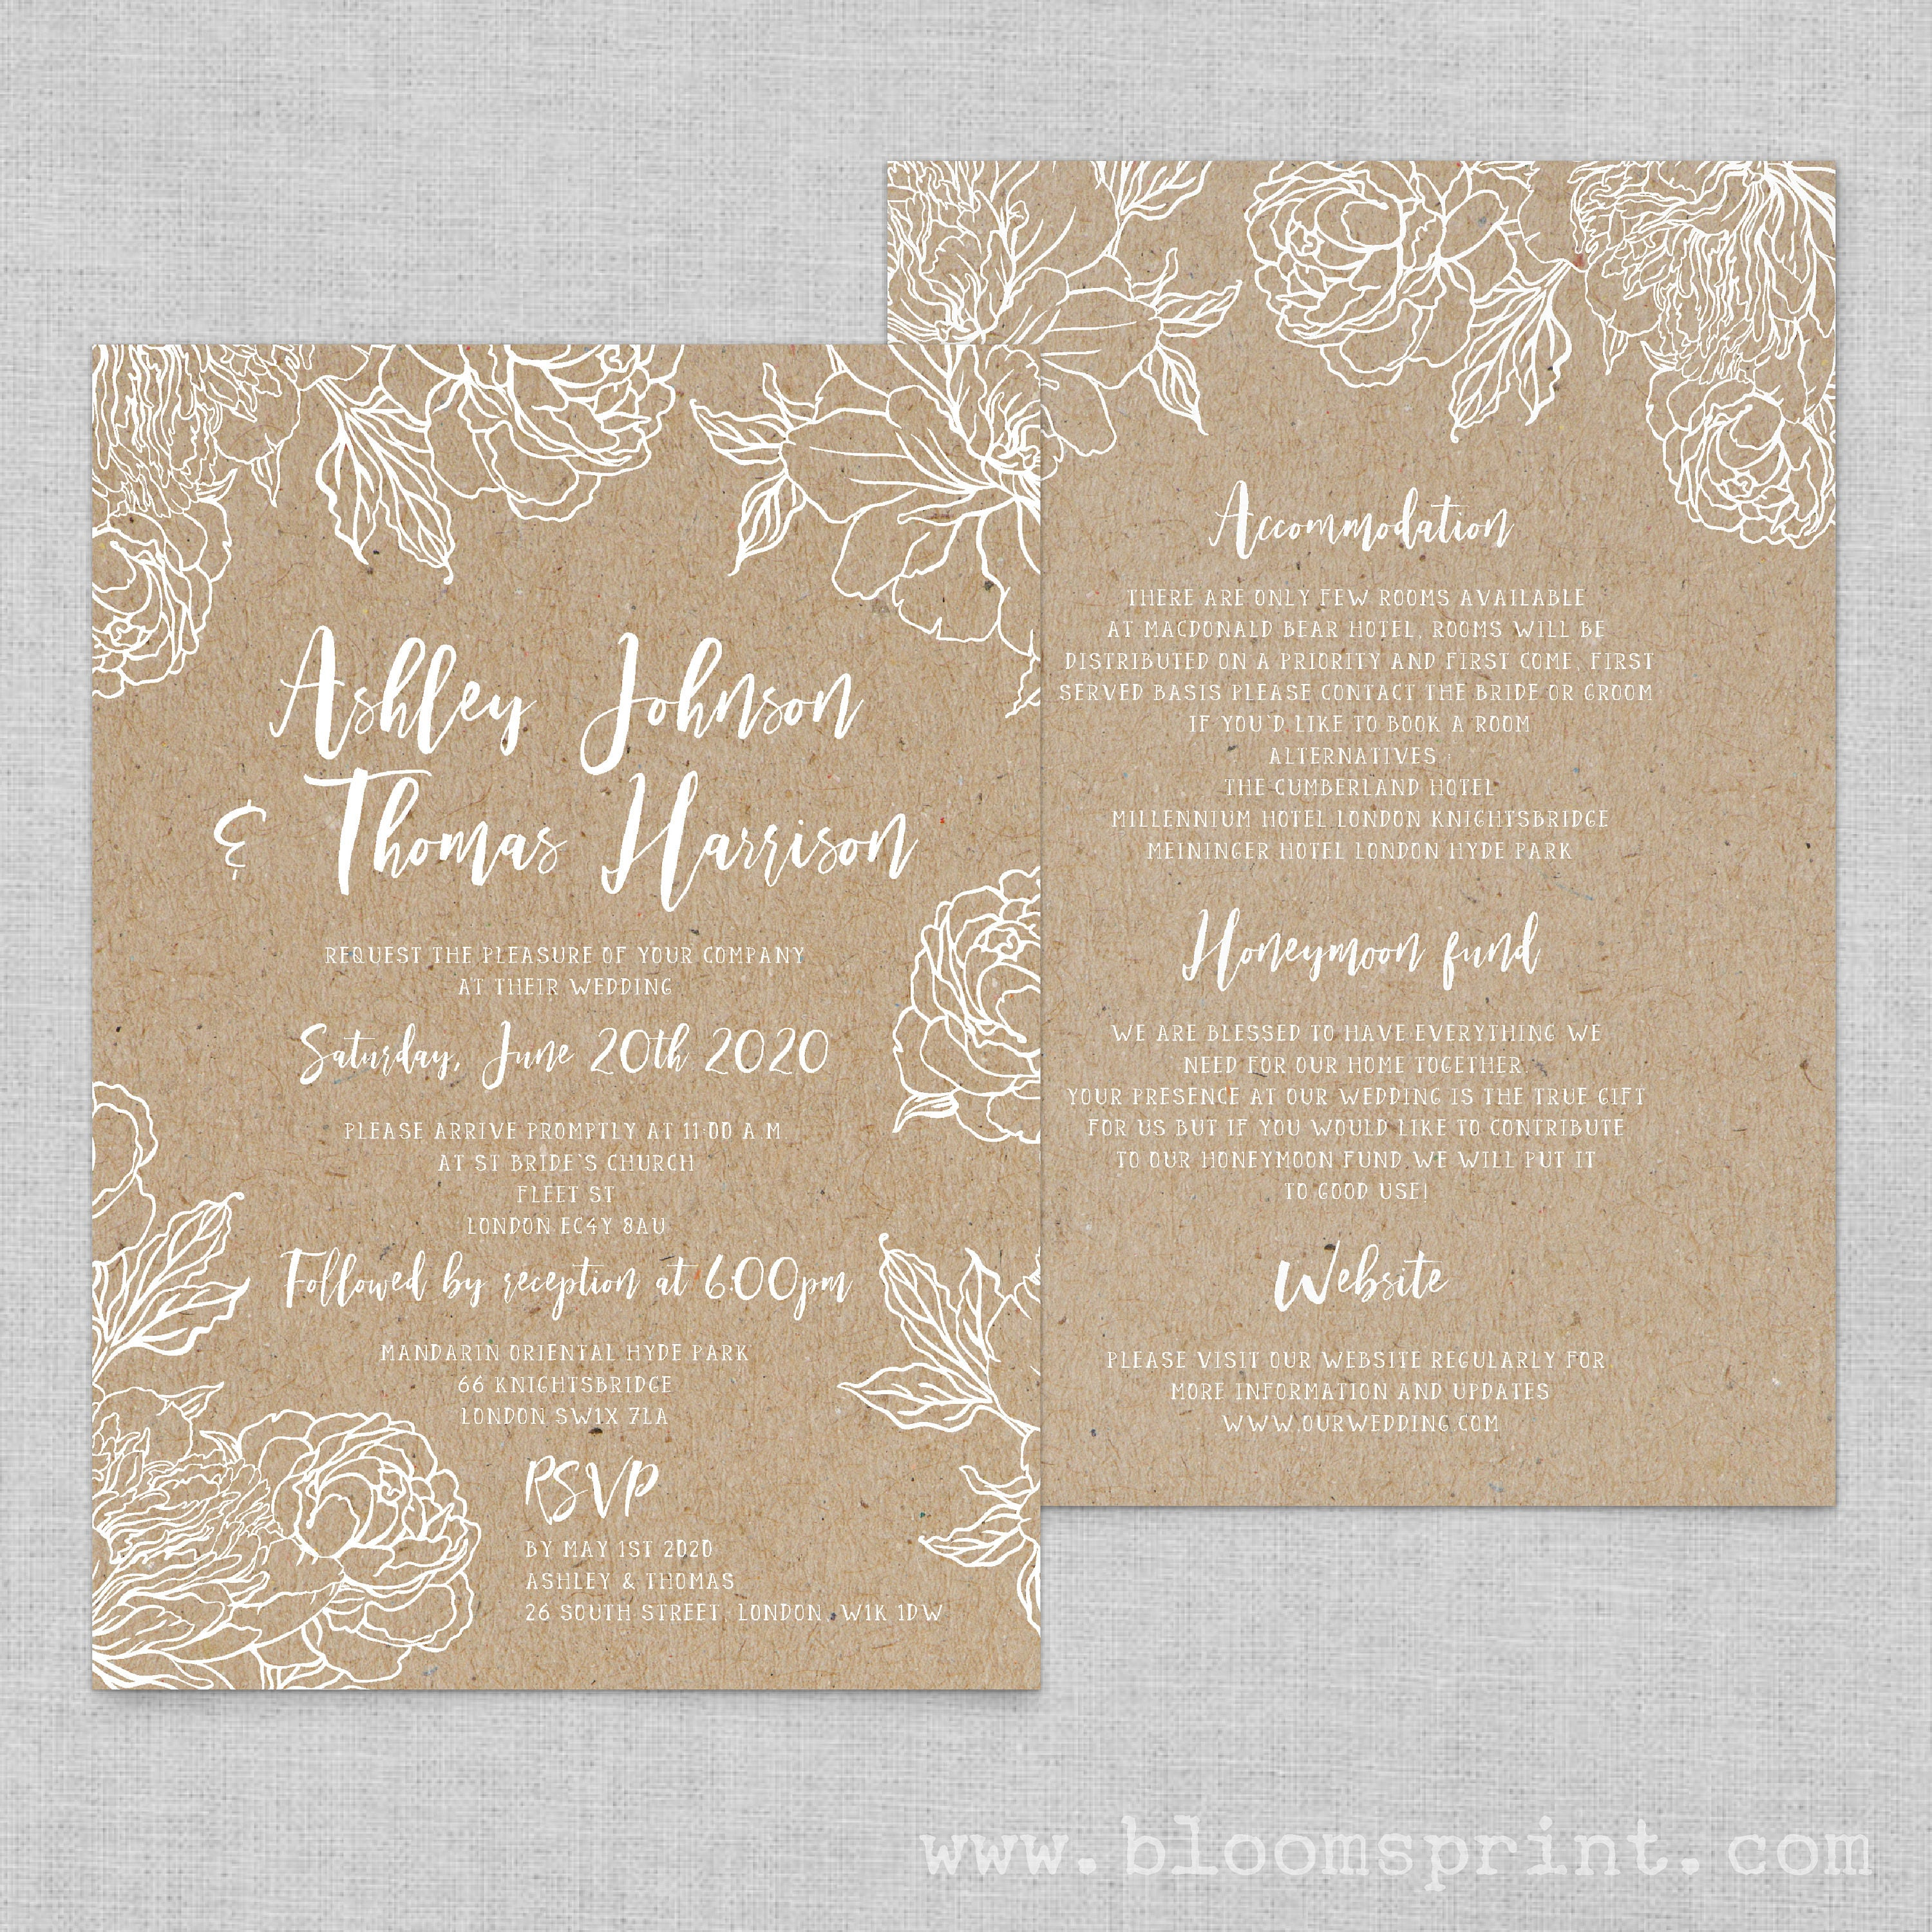 Floral wedding invitation template, Boho chic wedding invites floral ...